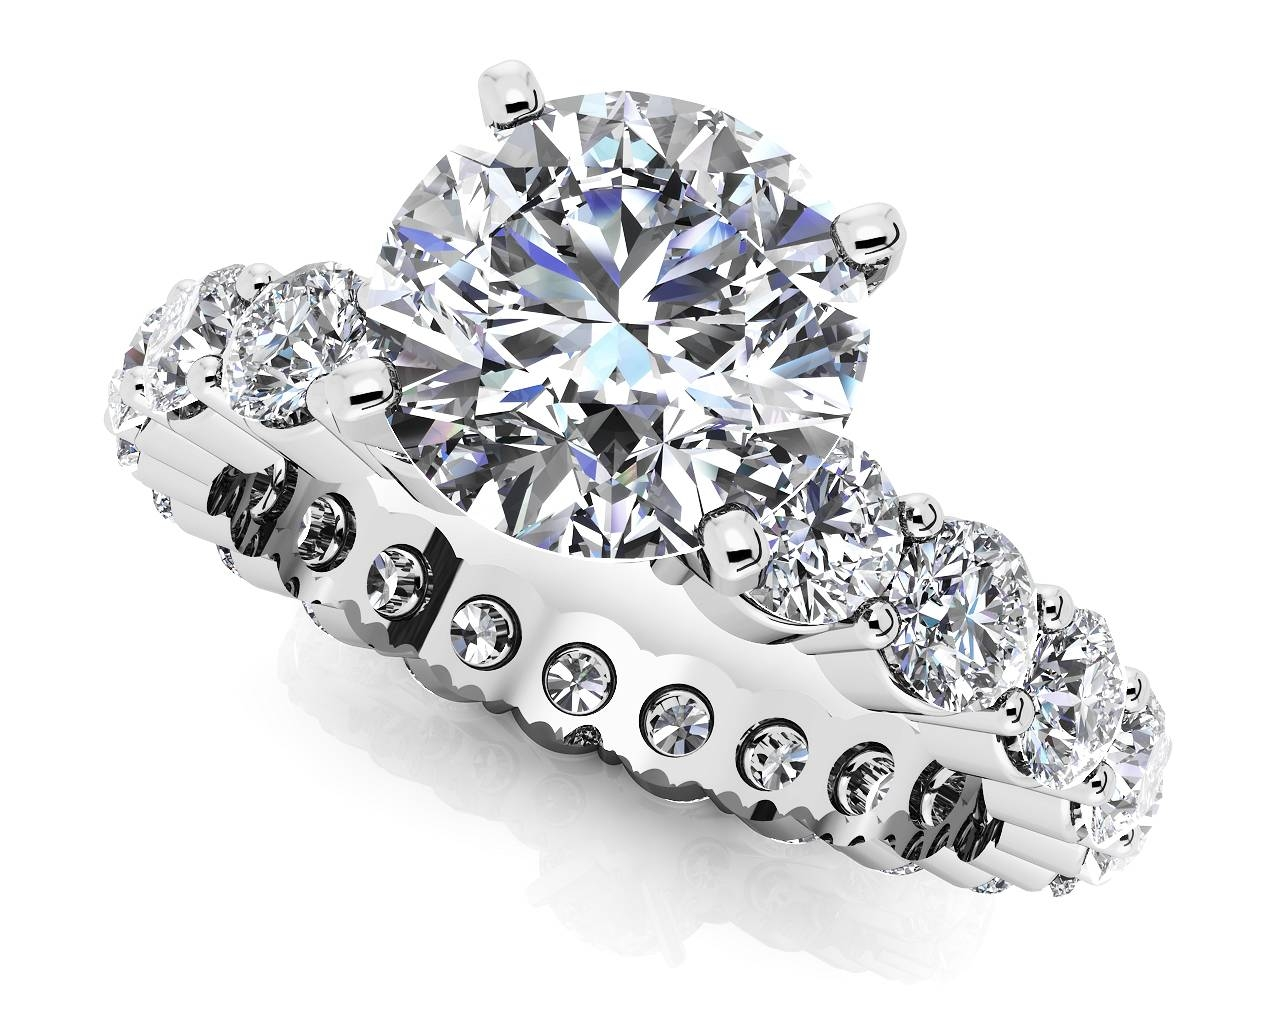 Customize Your Own High Quality Diamond Engagement Ring Throughout Diamond Wedding Rings (View 4 of 15)